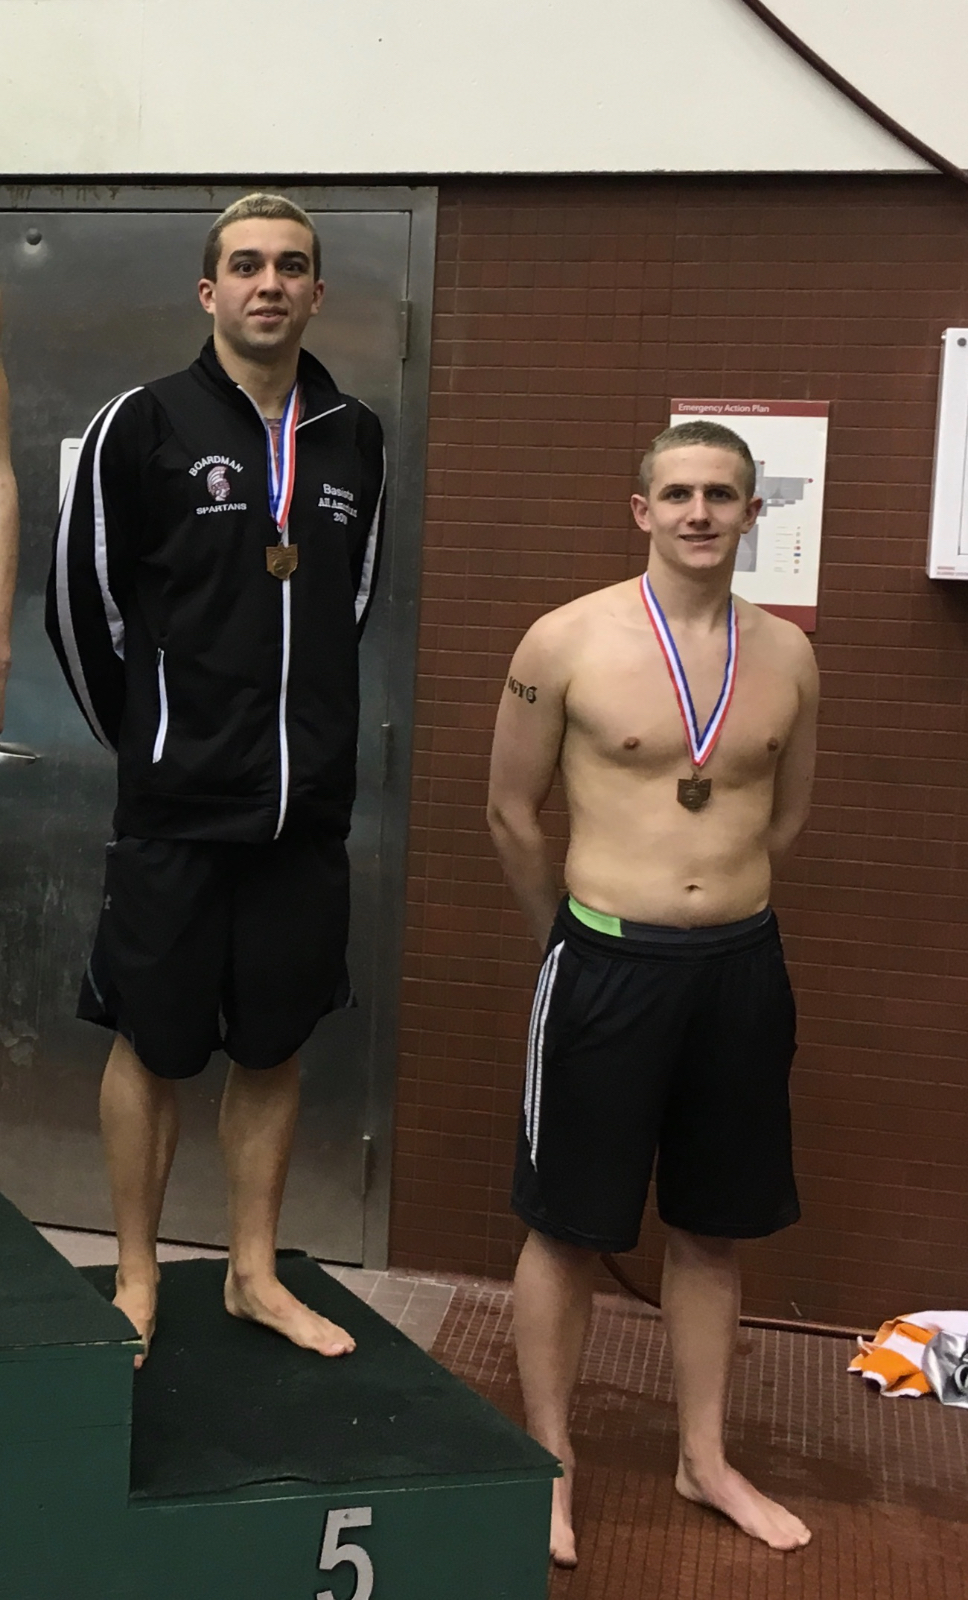 Swimmers Noah Basista and Matt DunLany Qualify To The OHSAA State Swim And Dive State Championships In Individual Events